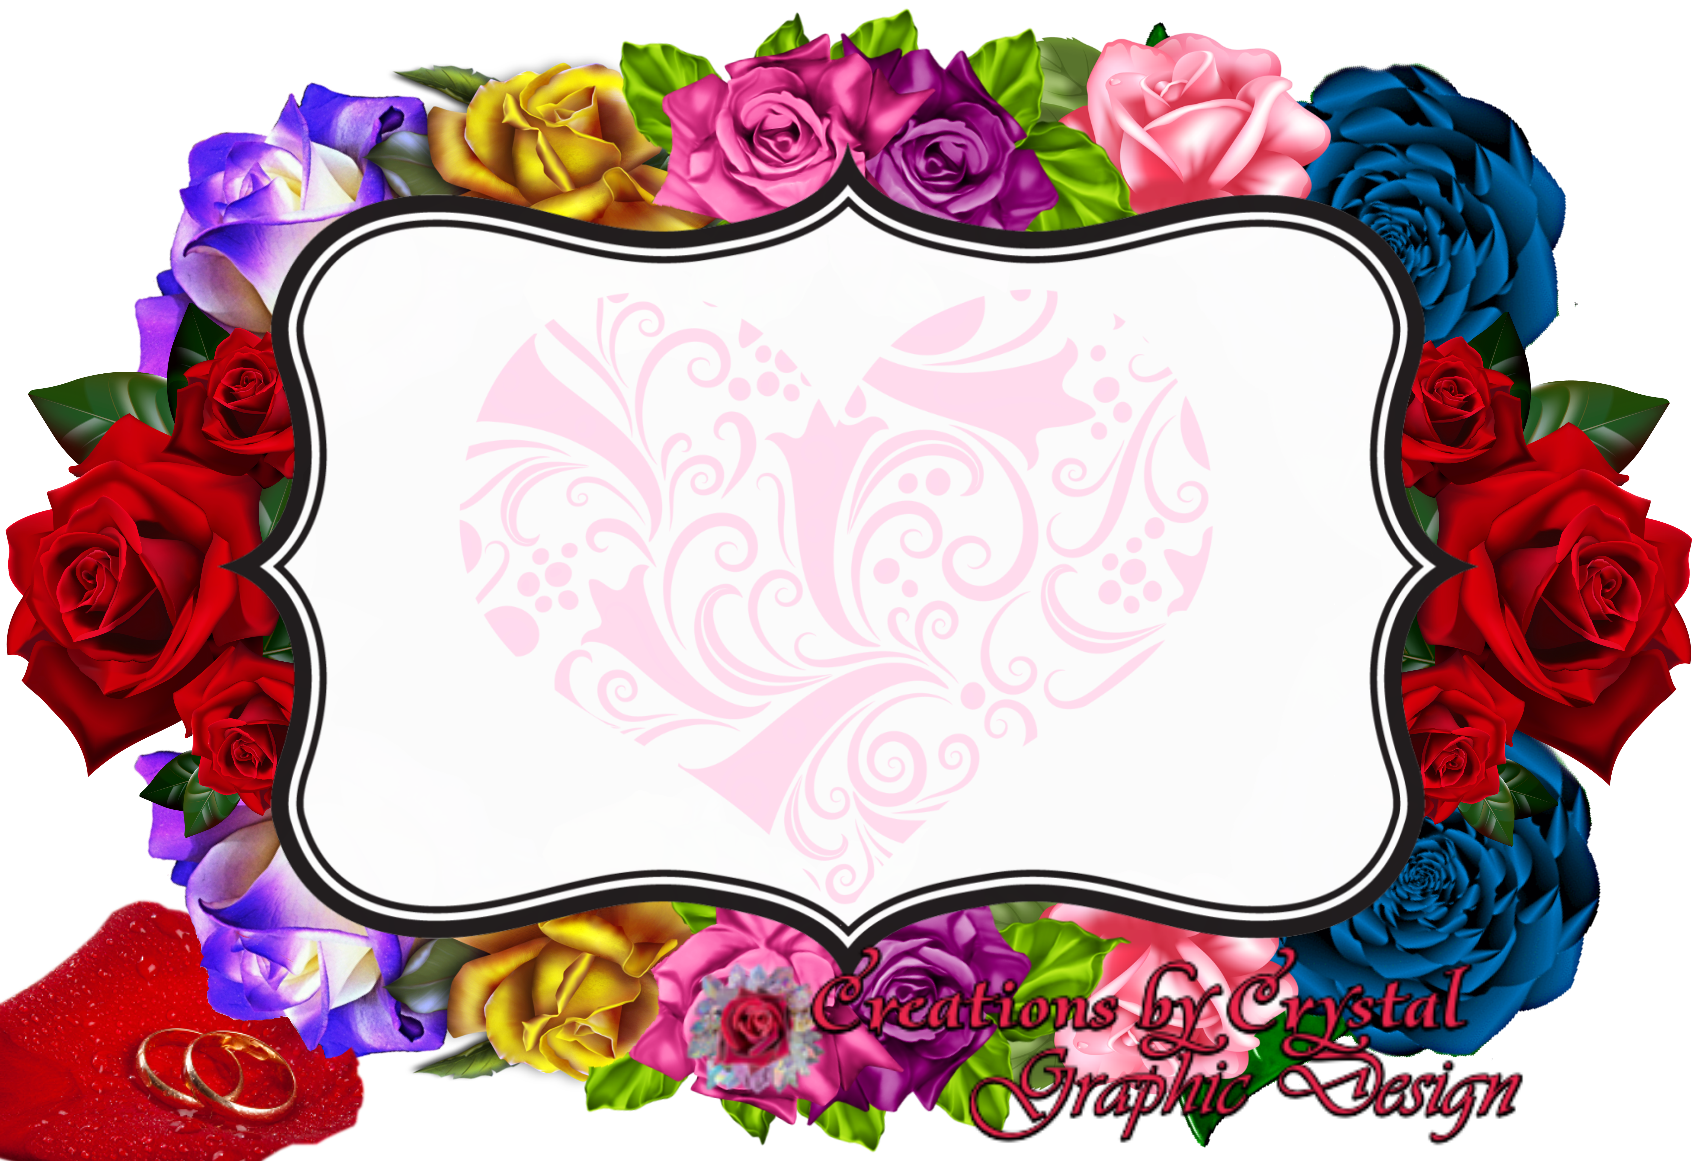 Vertical flower border clipart transparent Custom Borders Created For Her - CbyCGraphicDesign transparent